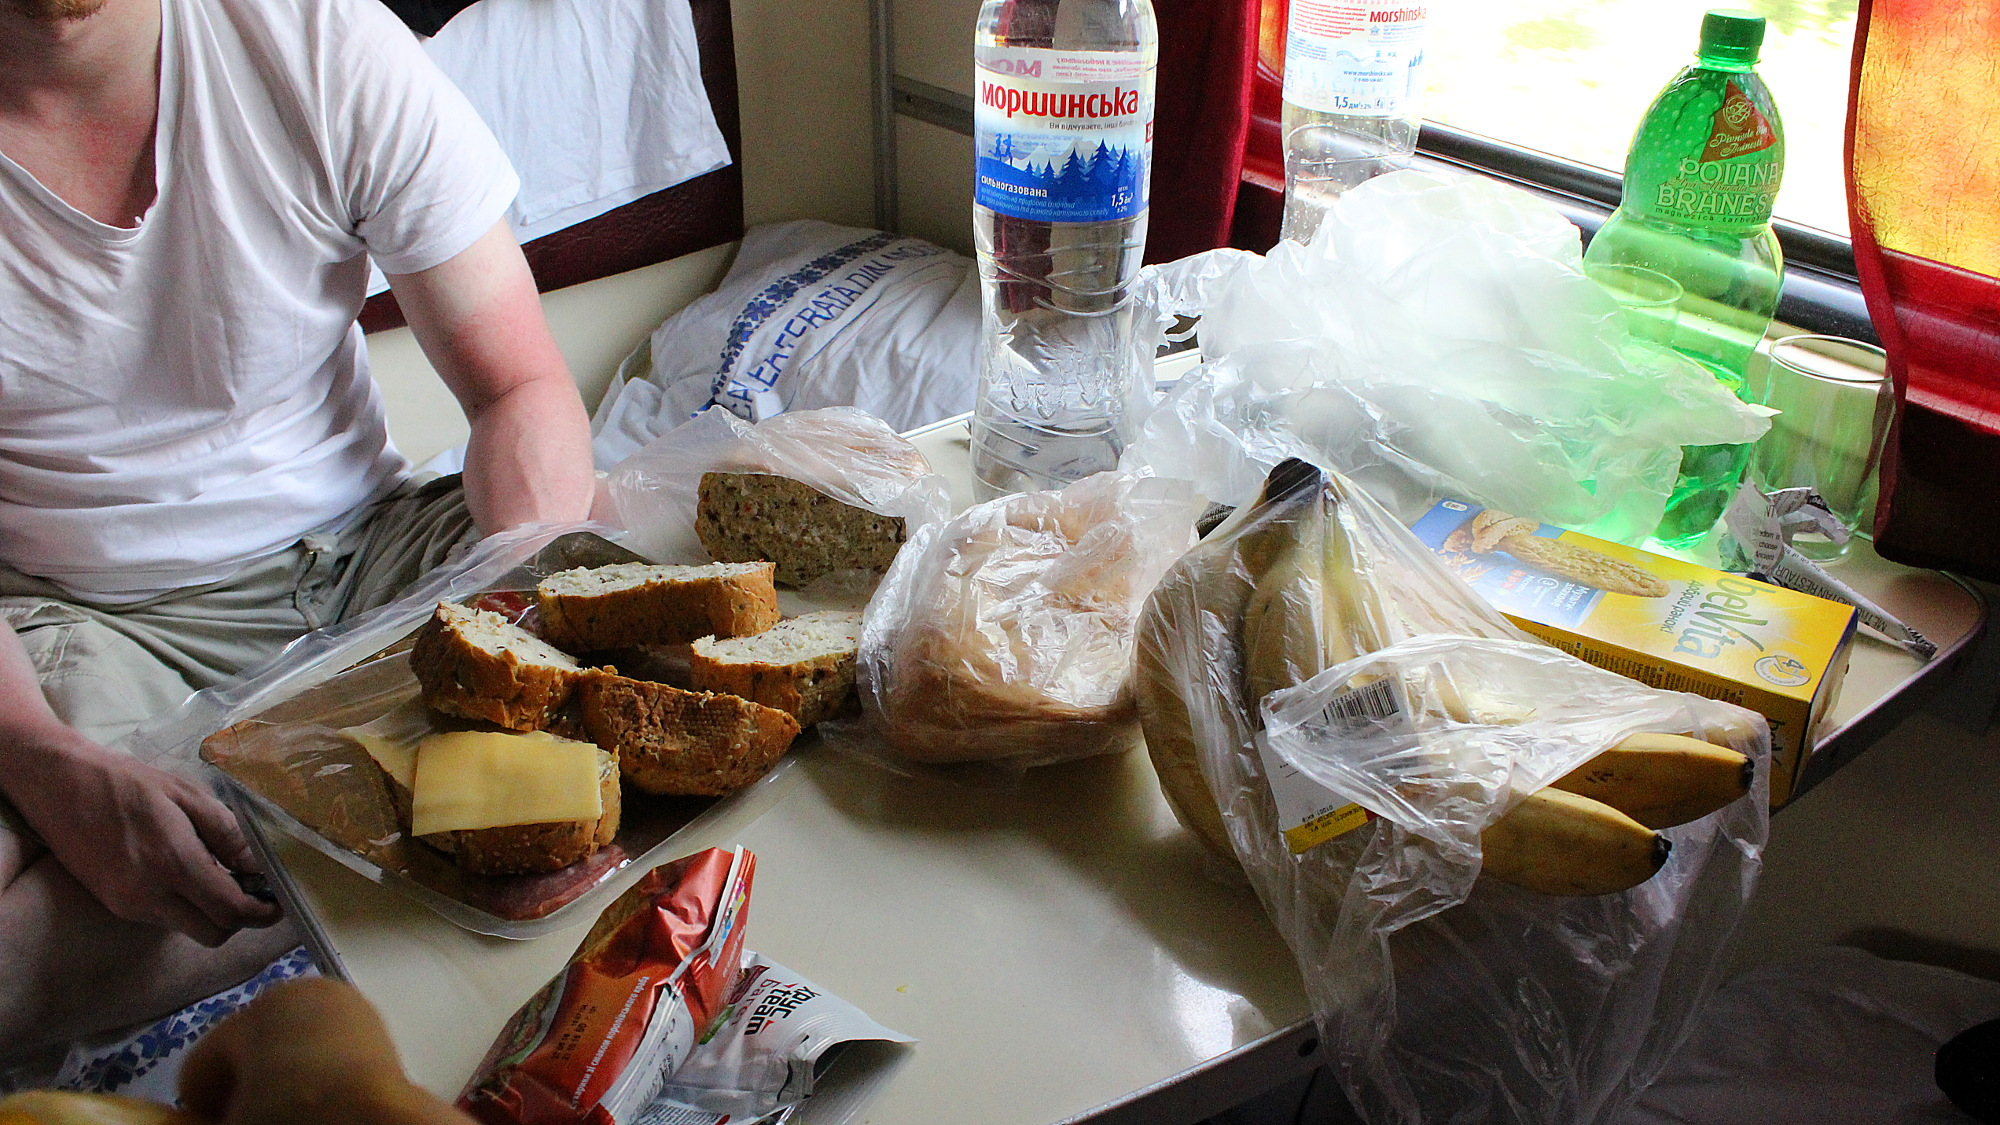 Things to do on long train journeys. Bread, bananas and other snacks spread on a train table in a sleeper car.